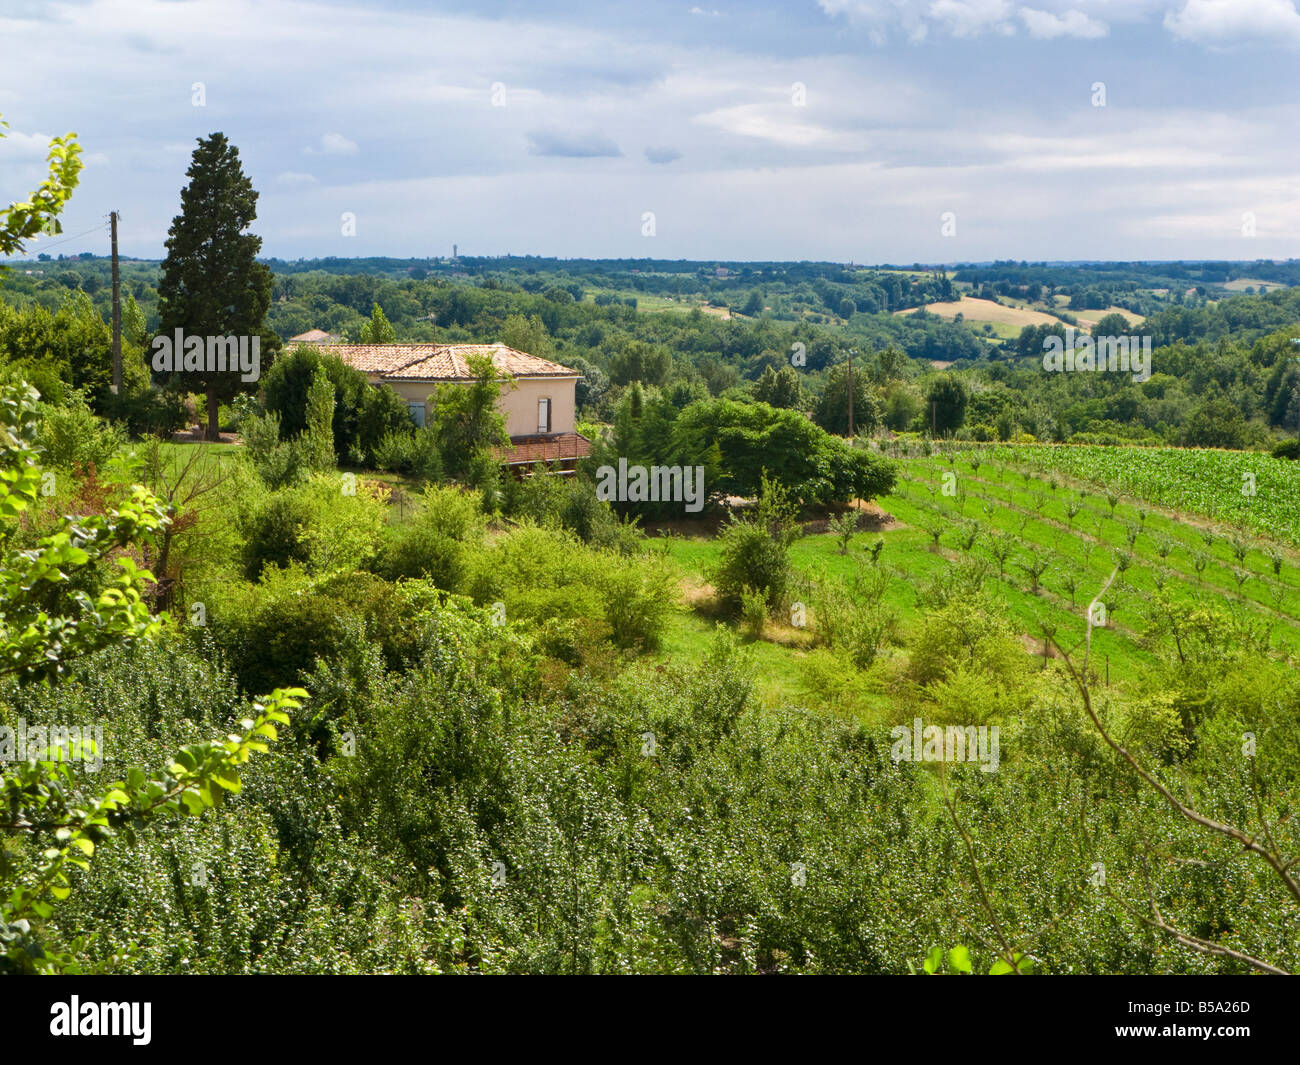 Tarn et Garonne farmhouse overlooking the countryside, France, Europe - Stock Image